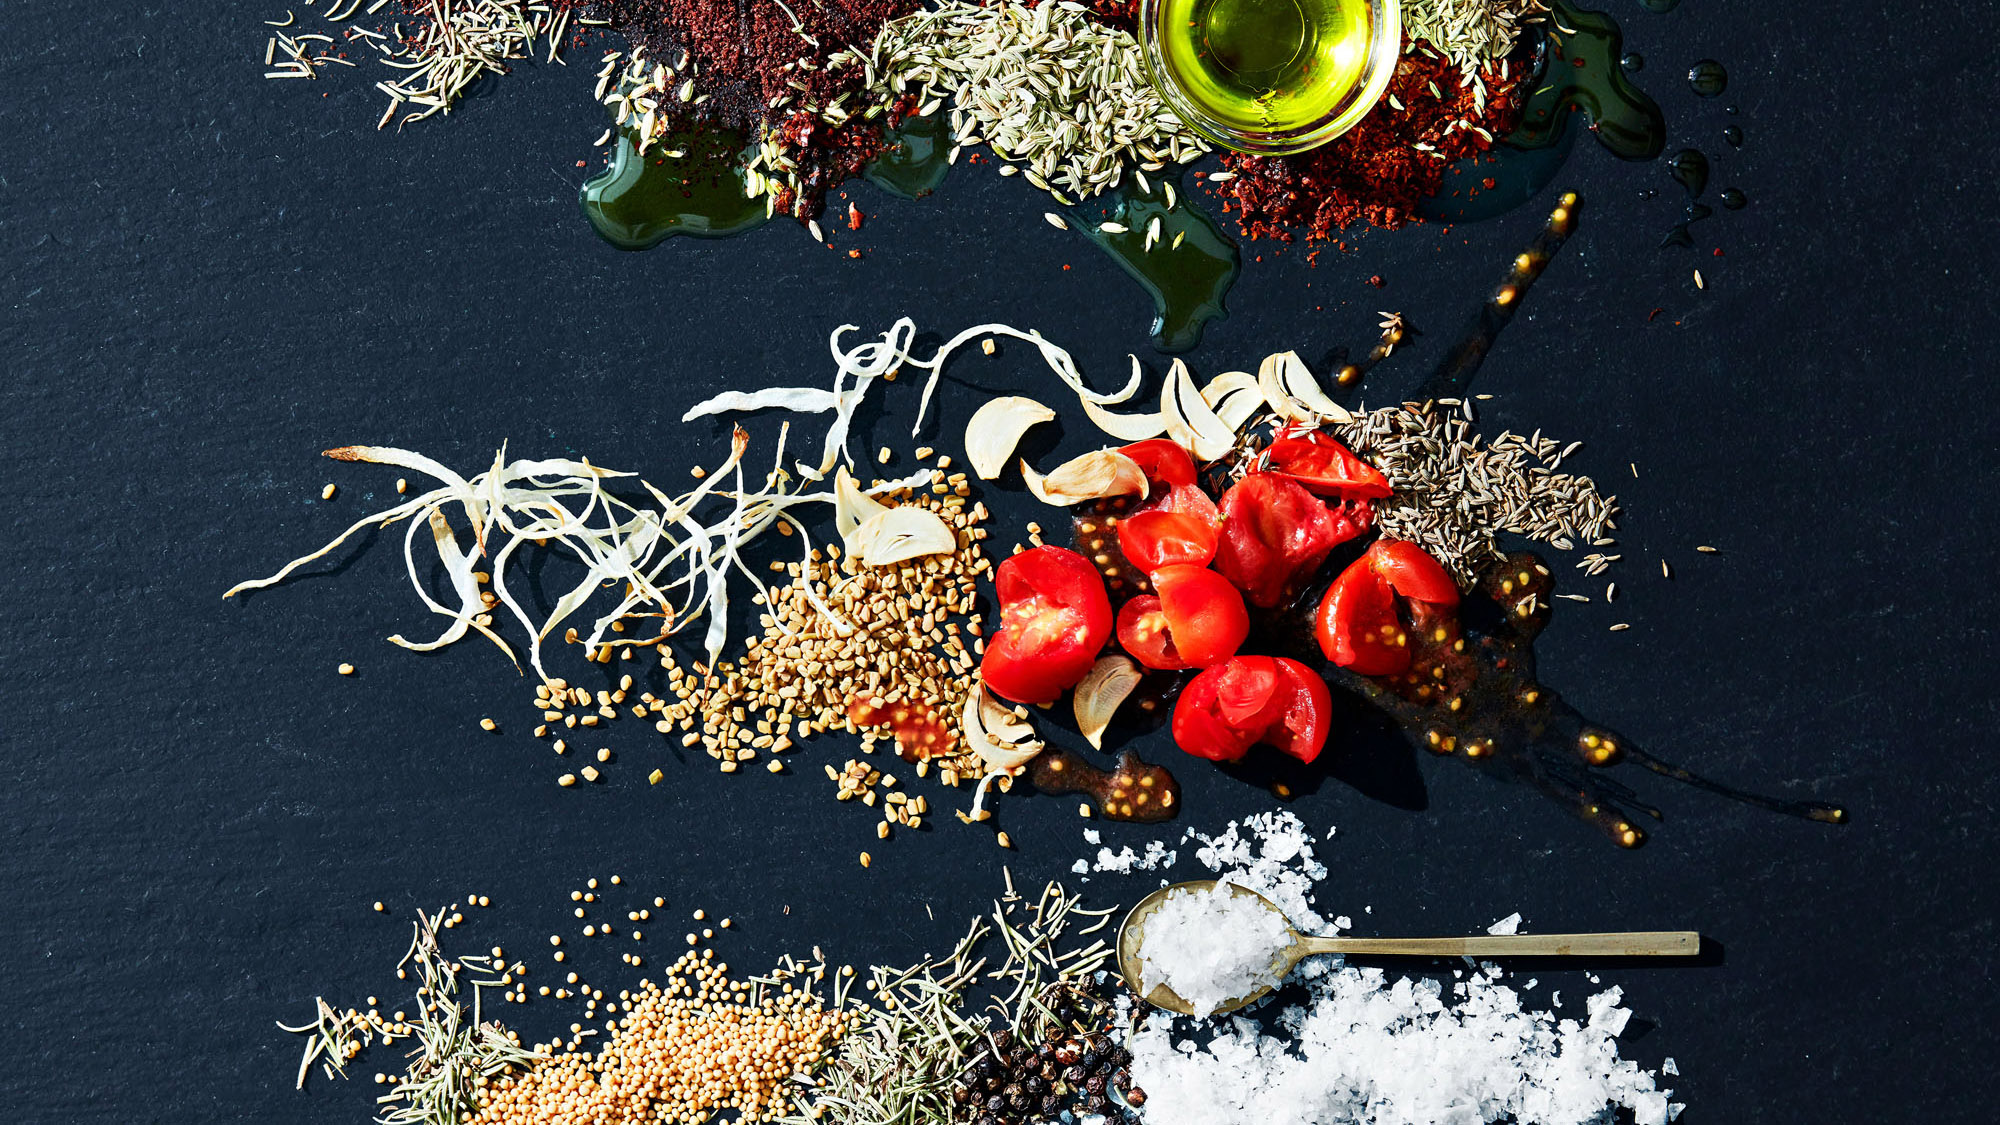 Spice Mix for Tomato Sauce